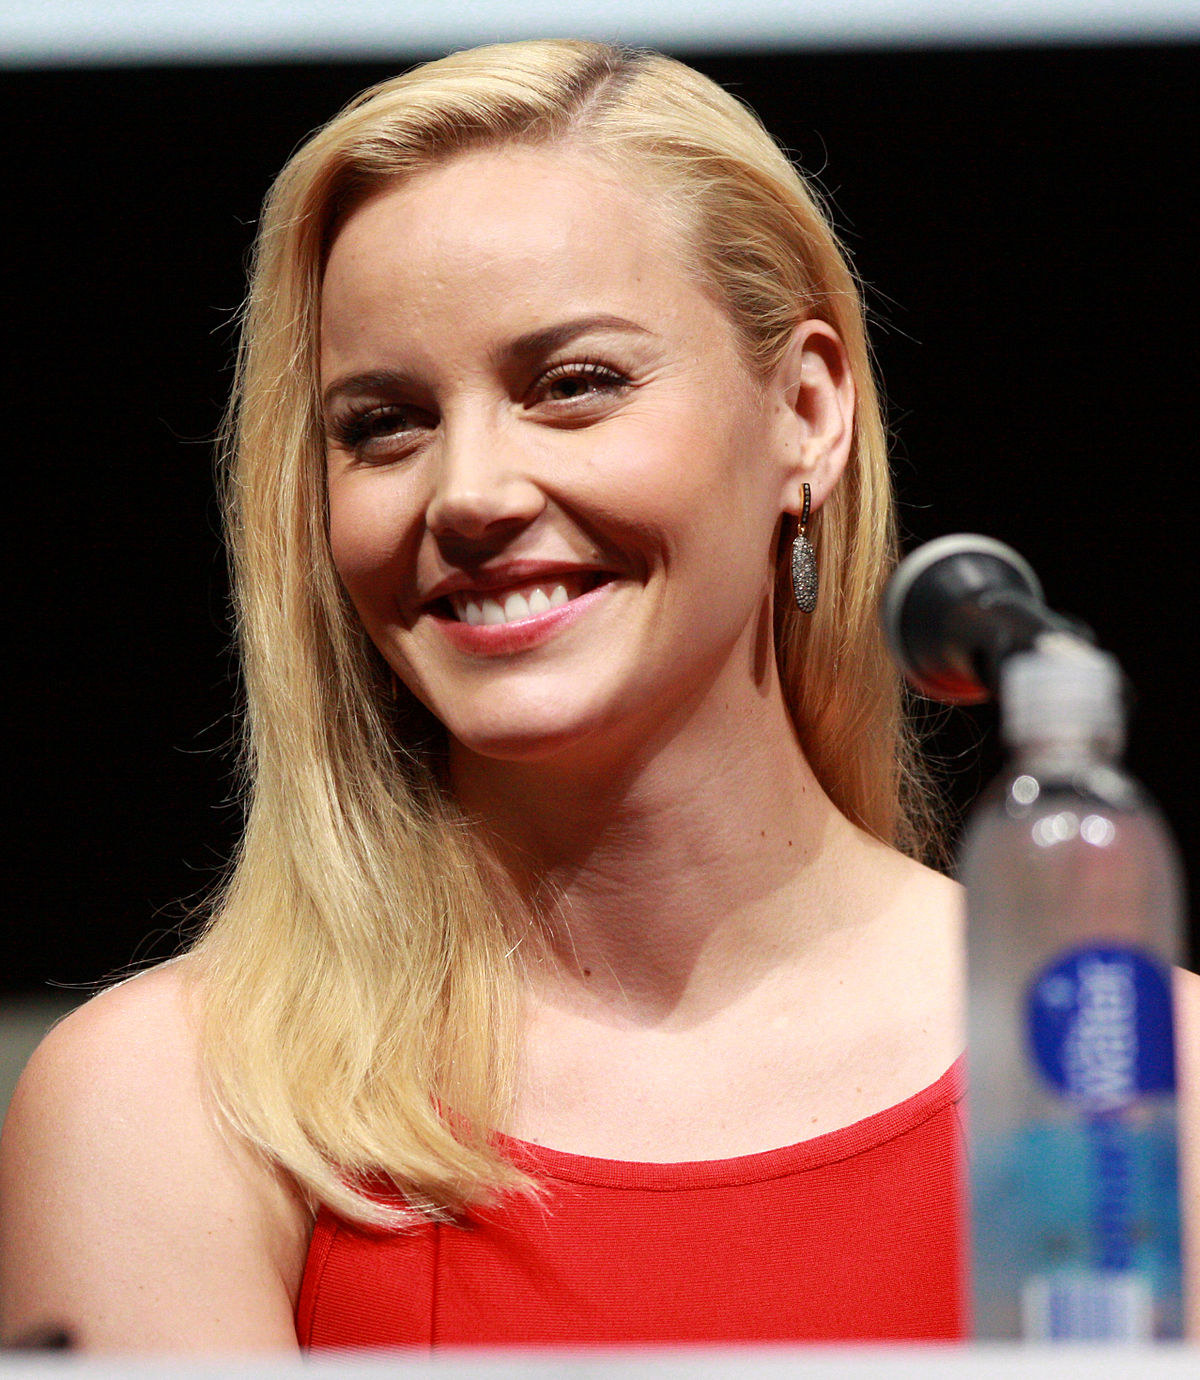 Abbie Cornish - Wikipedia, la enciclopedia libre Abbie Cornish